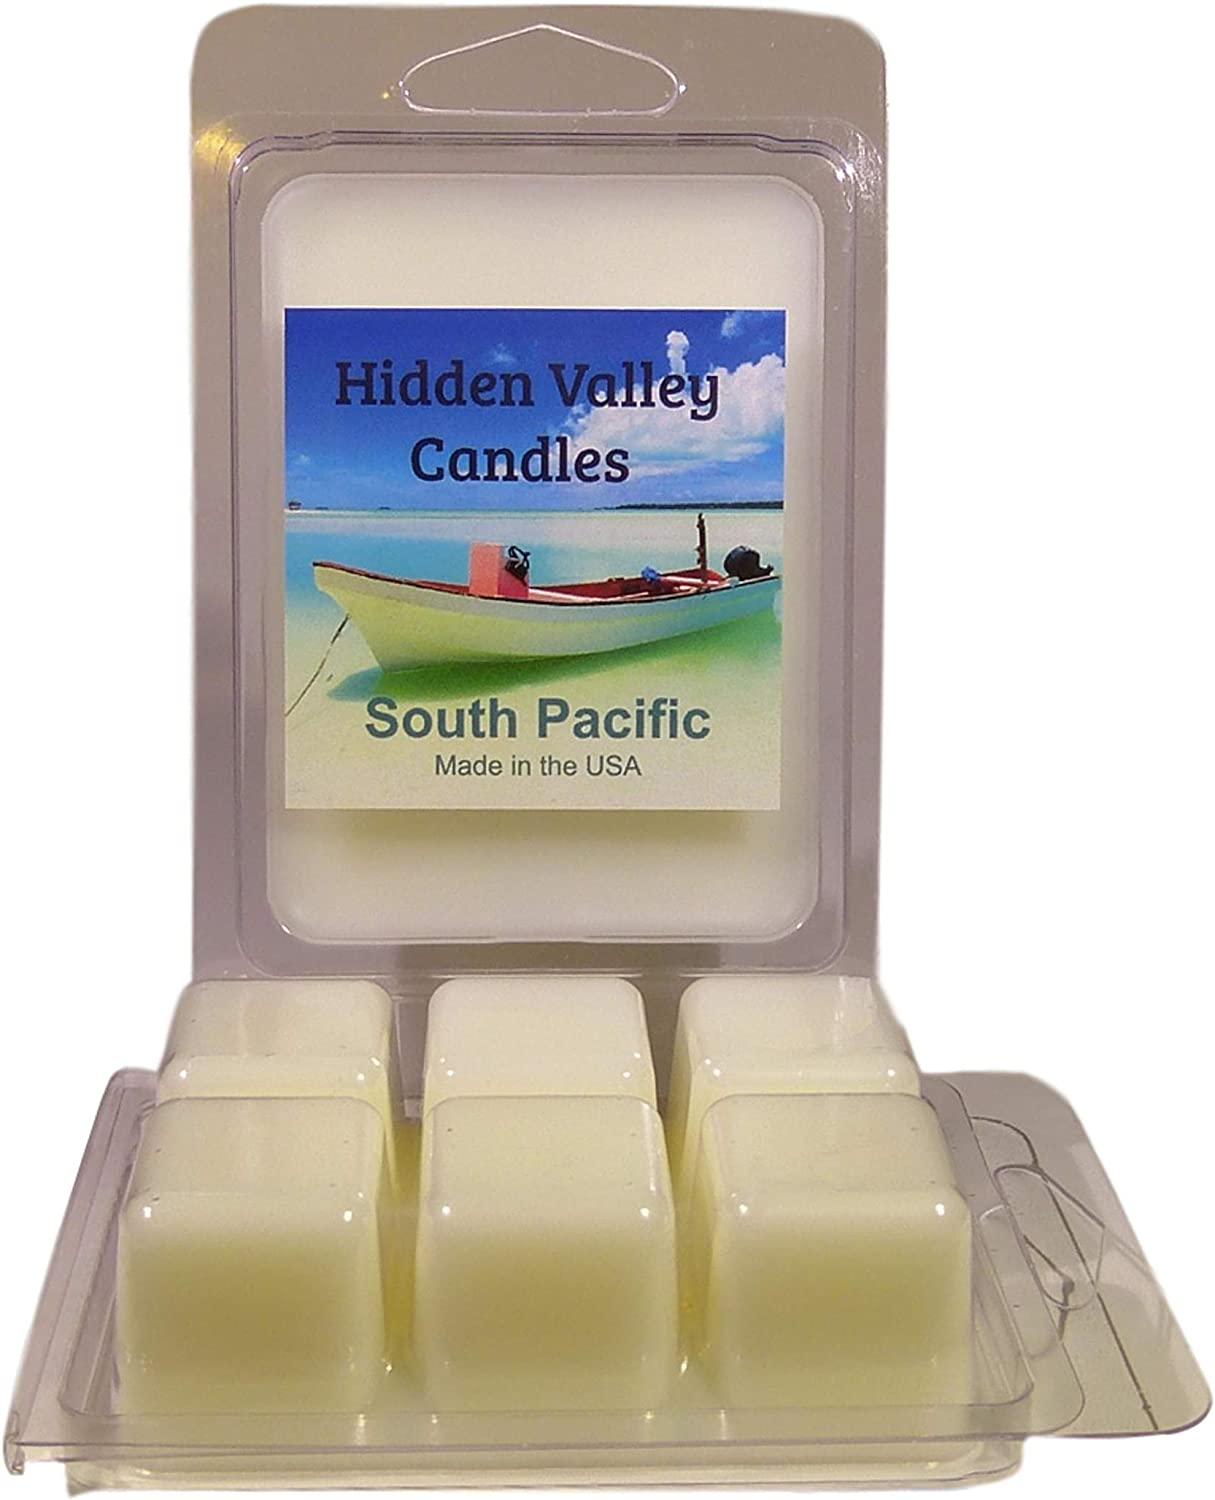 Hidden Valley Candles South Pacific Scented Wax Melts, 2 Pack. A Tropical Fragrance That You Will Love.